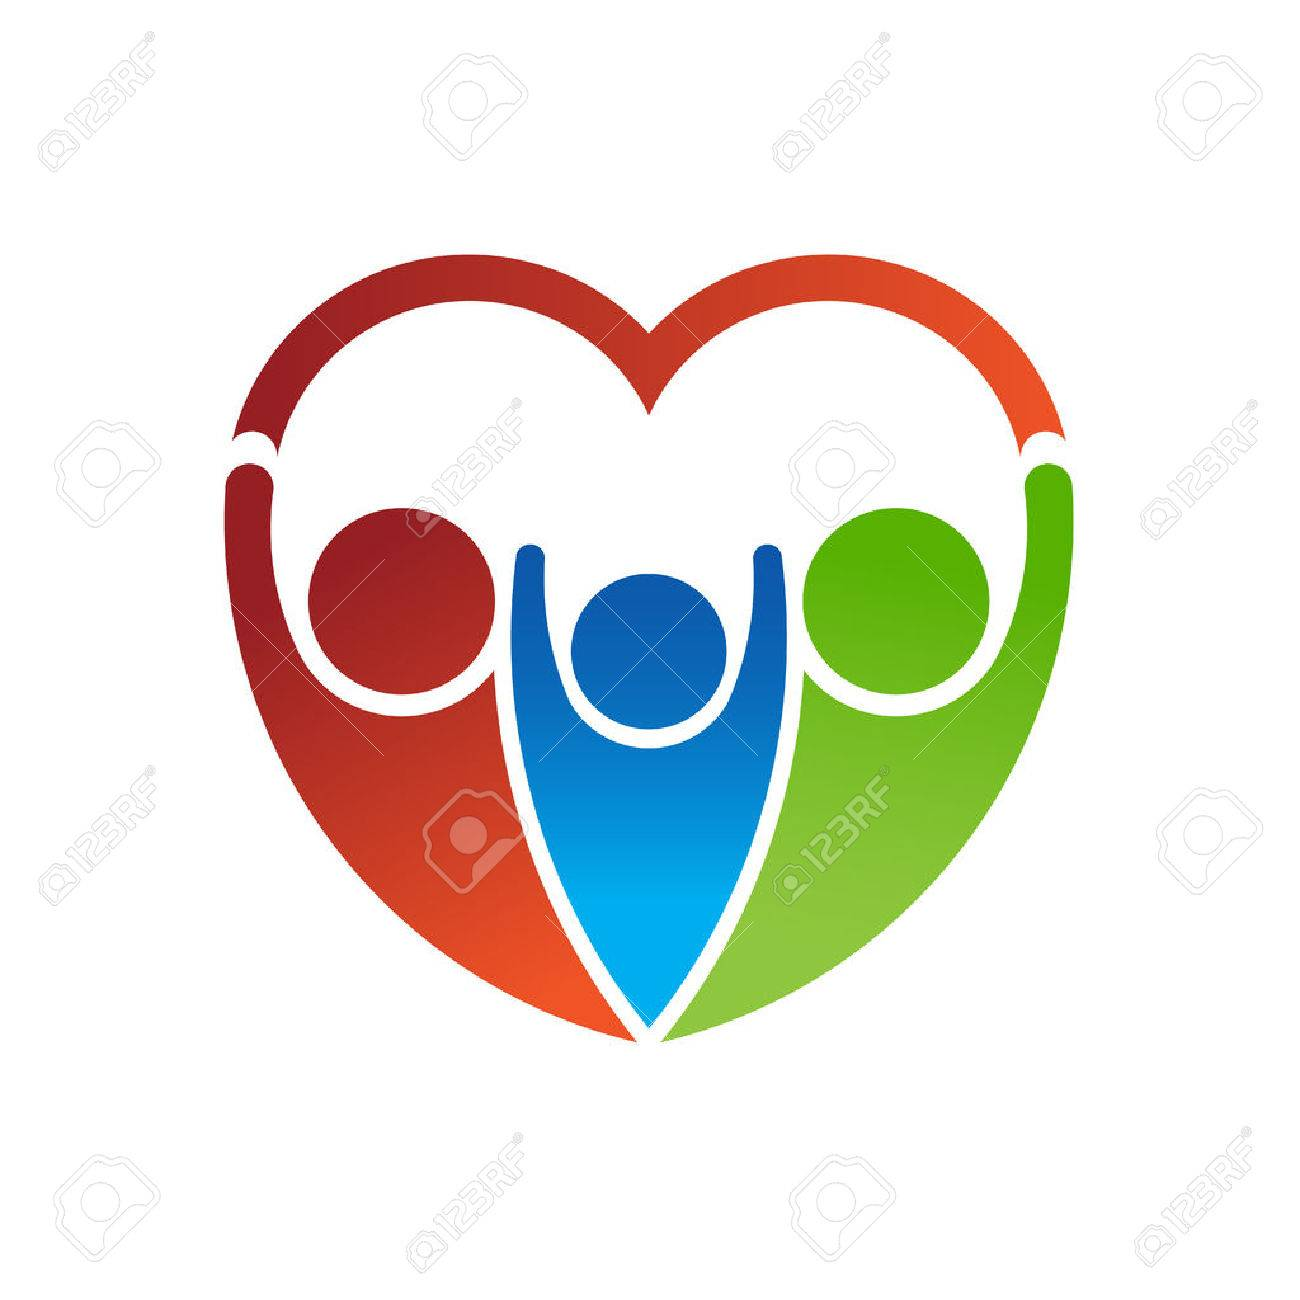 Group of people forming a heart. Family care concept Archivio Fotografico - 42091526